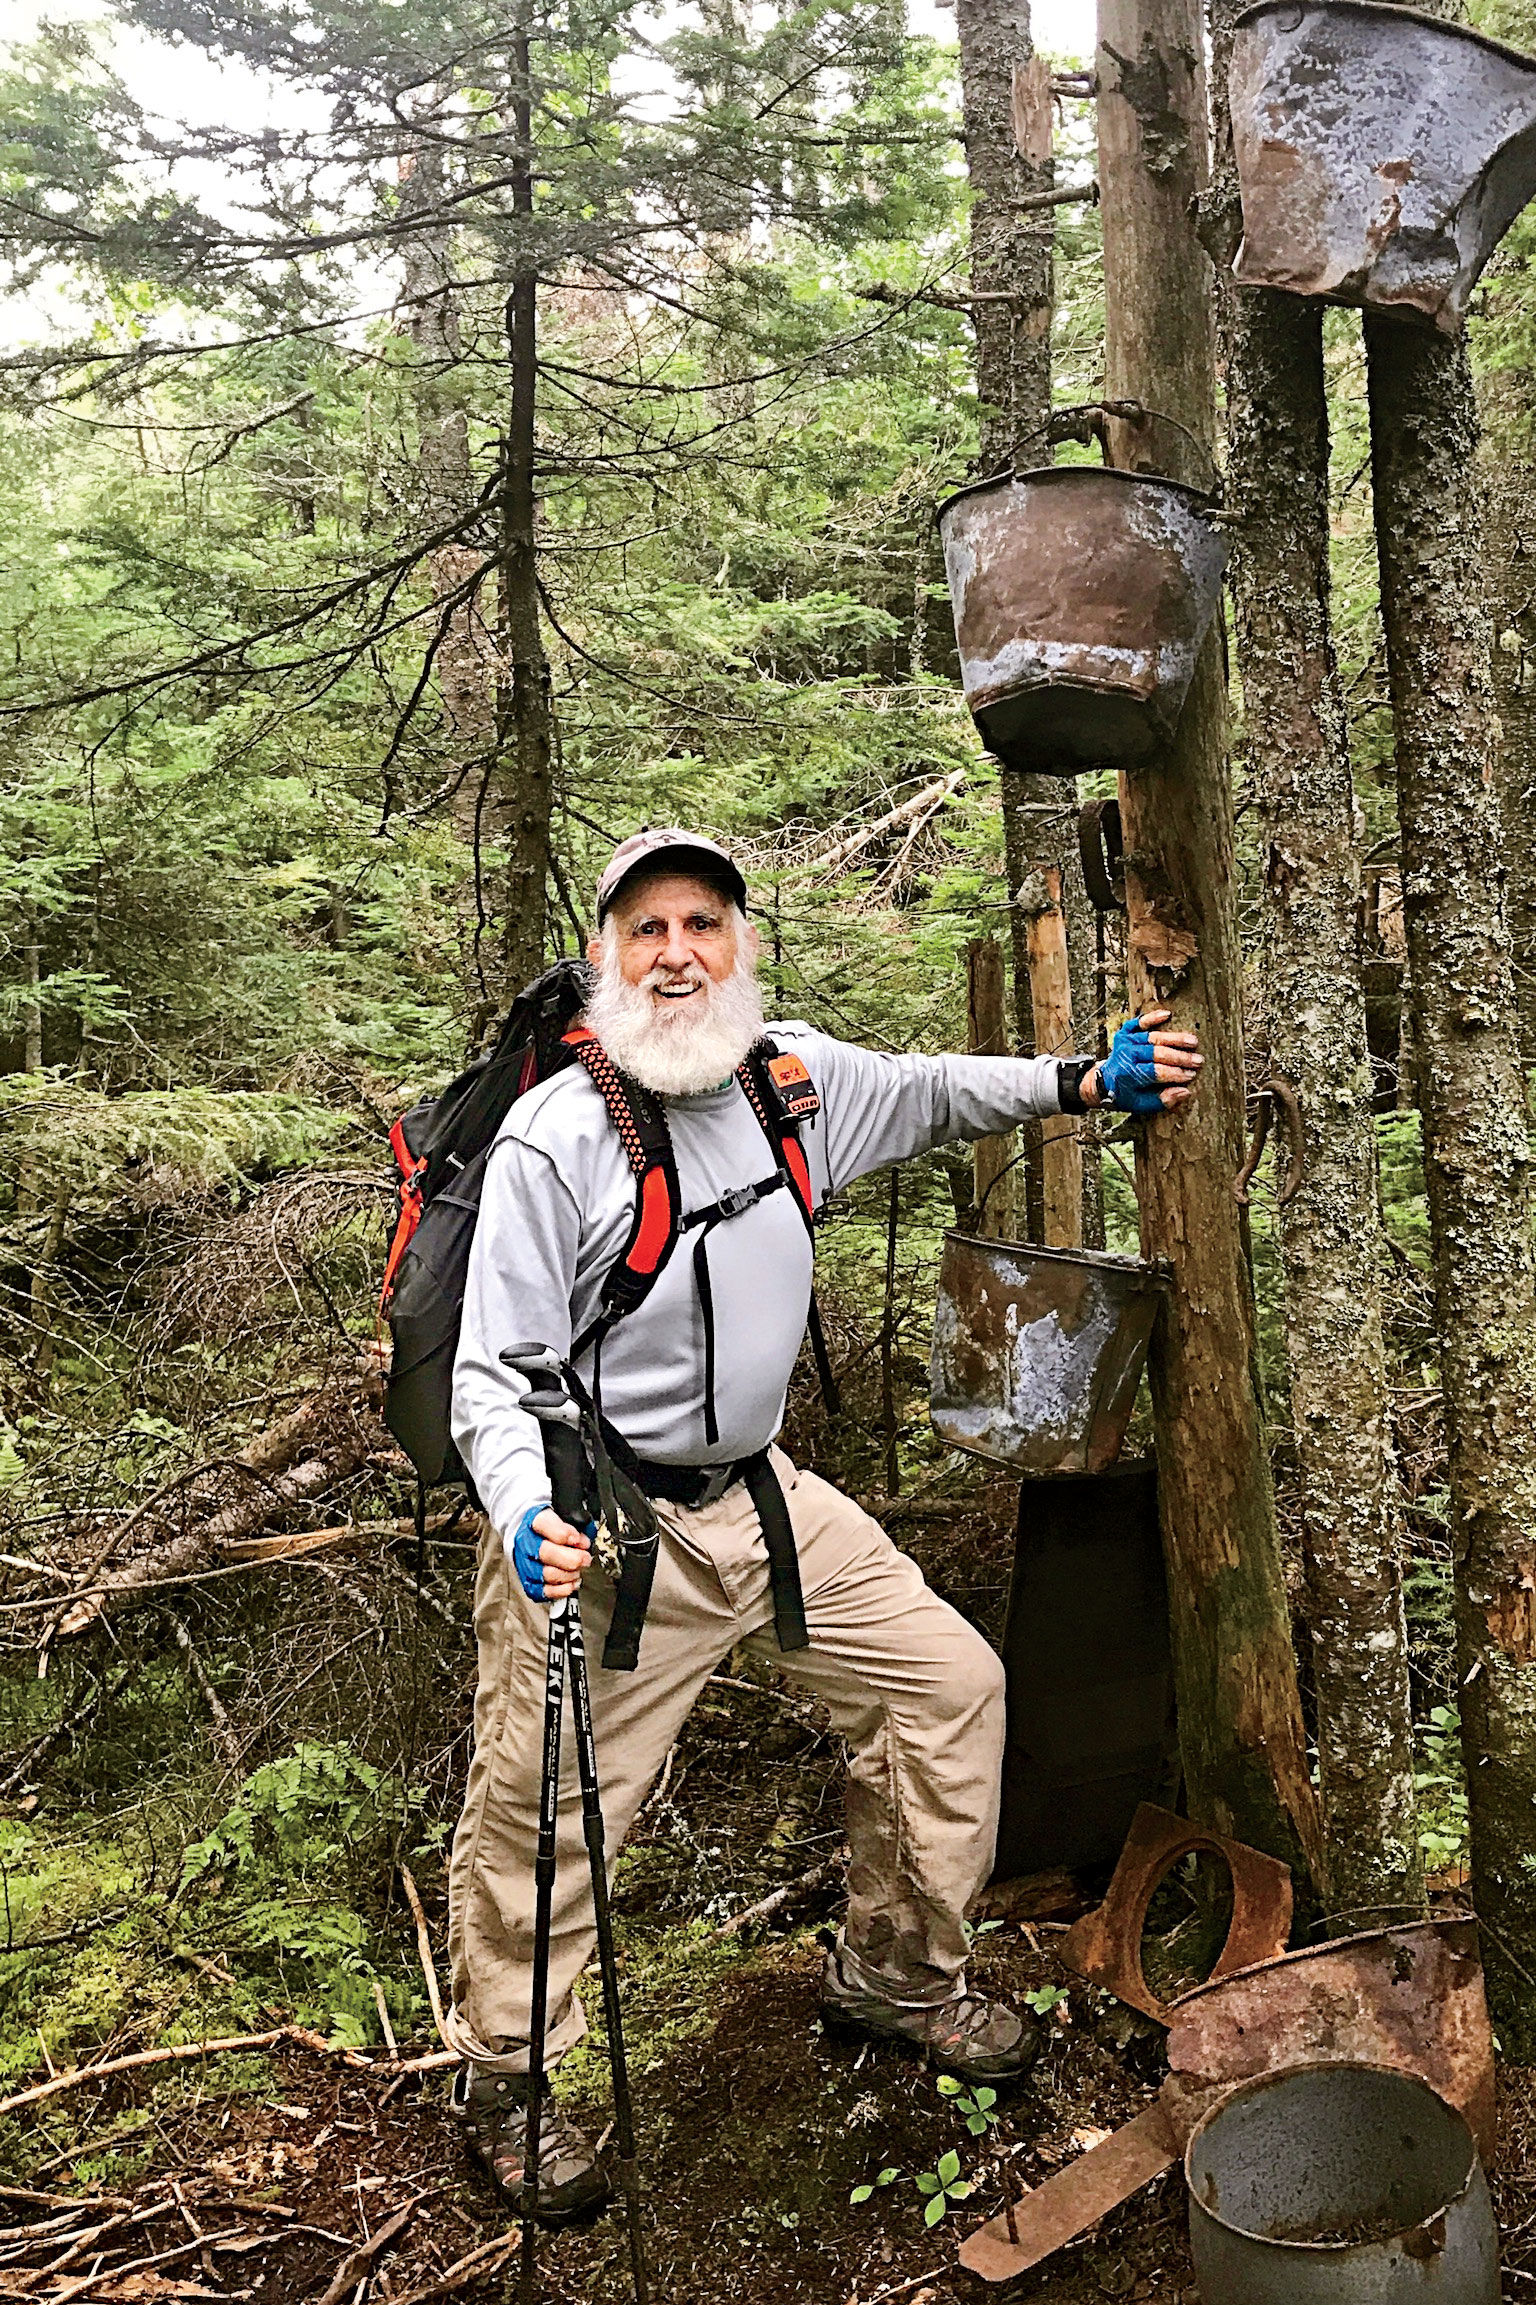 Meet Tennessee's Grey Beard Adventurer